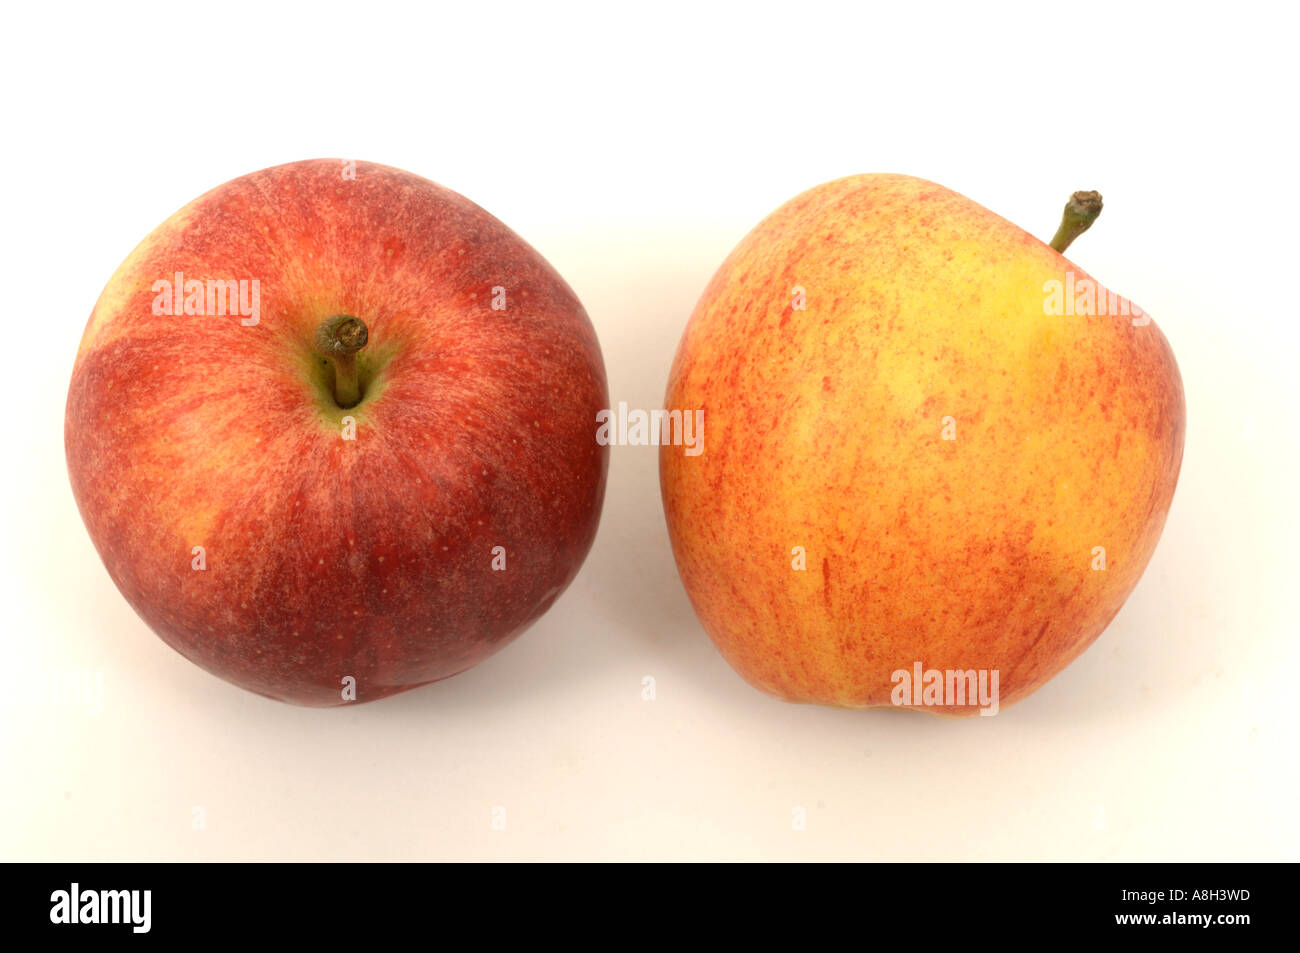 Royal Gala apples supermarket bought and in normal shop condition - Stock Image